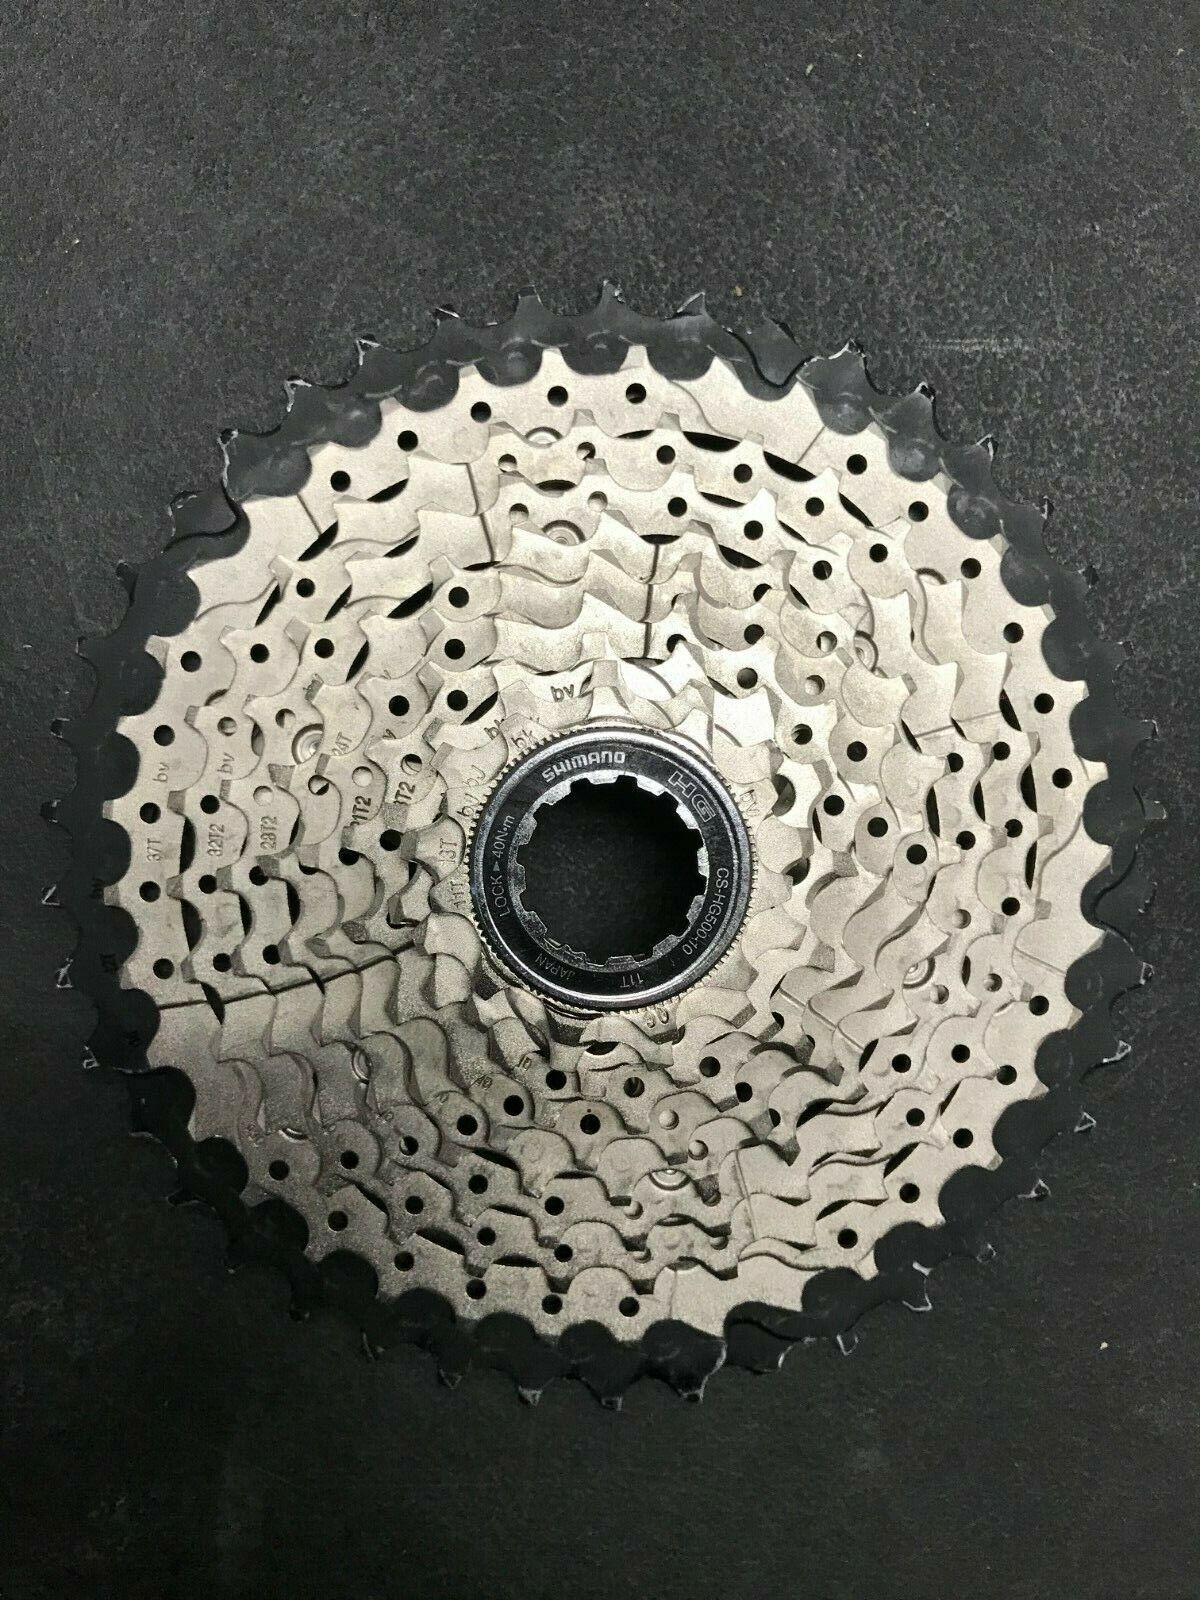 Shimano CS-HG500 10-Speed 11-42t Cassette - Lightly Used